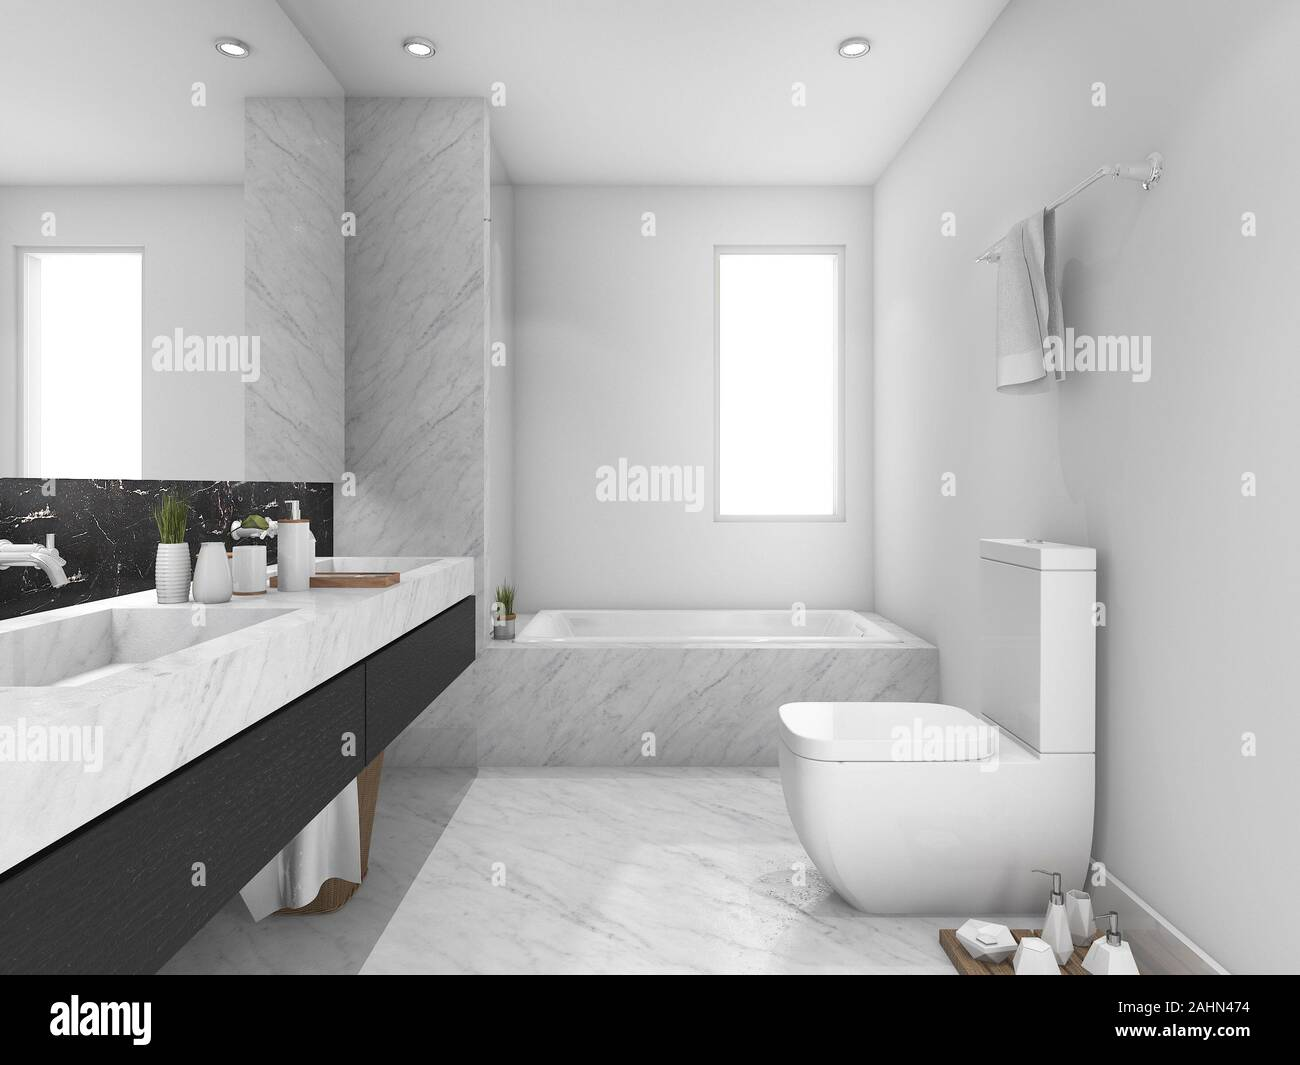 3d Rendering White And Black Marble Toilet And Bathroom Stock Photo Alamy